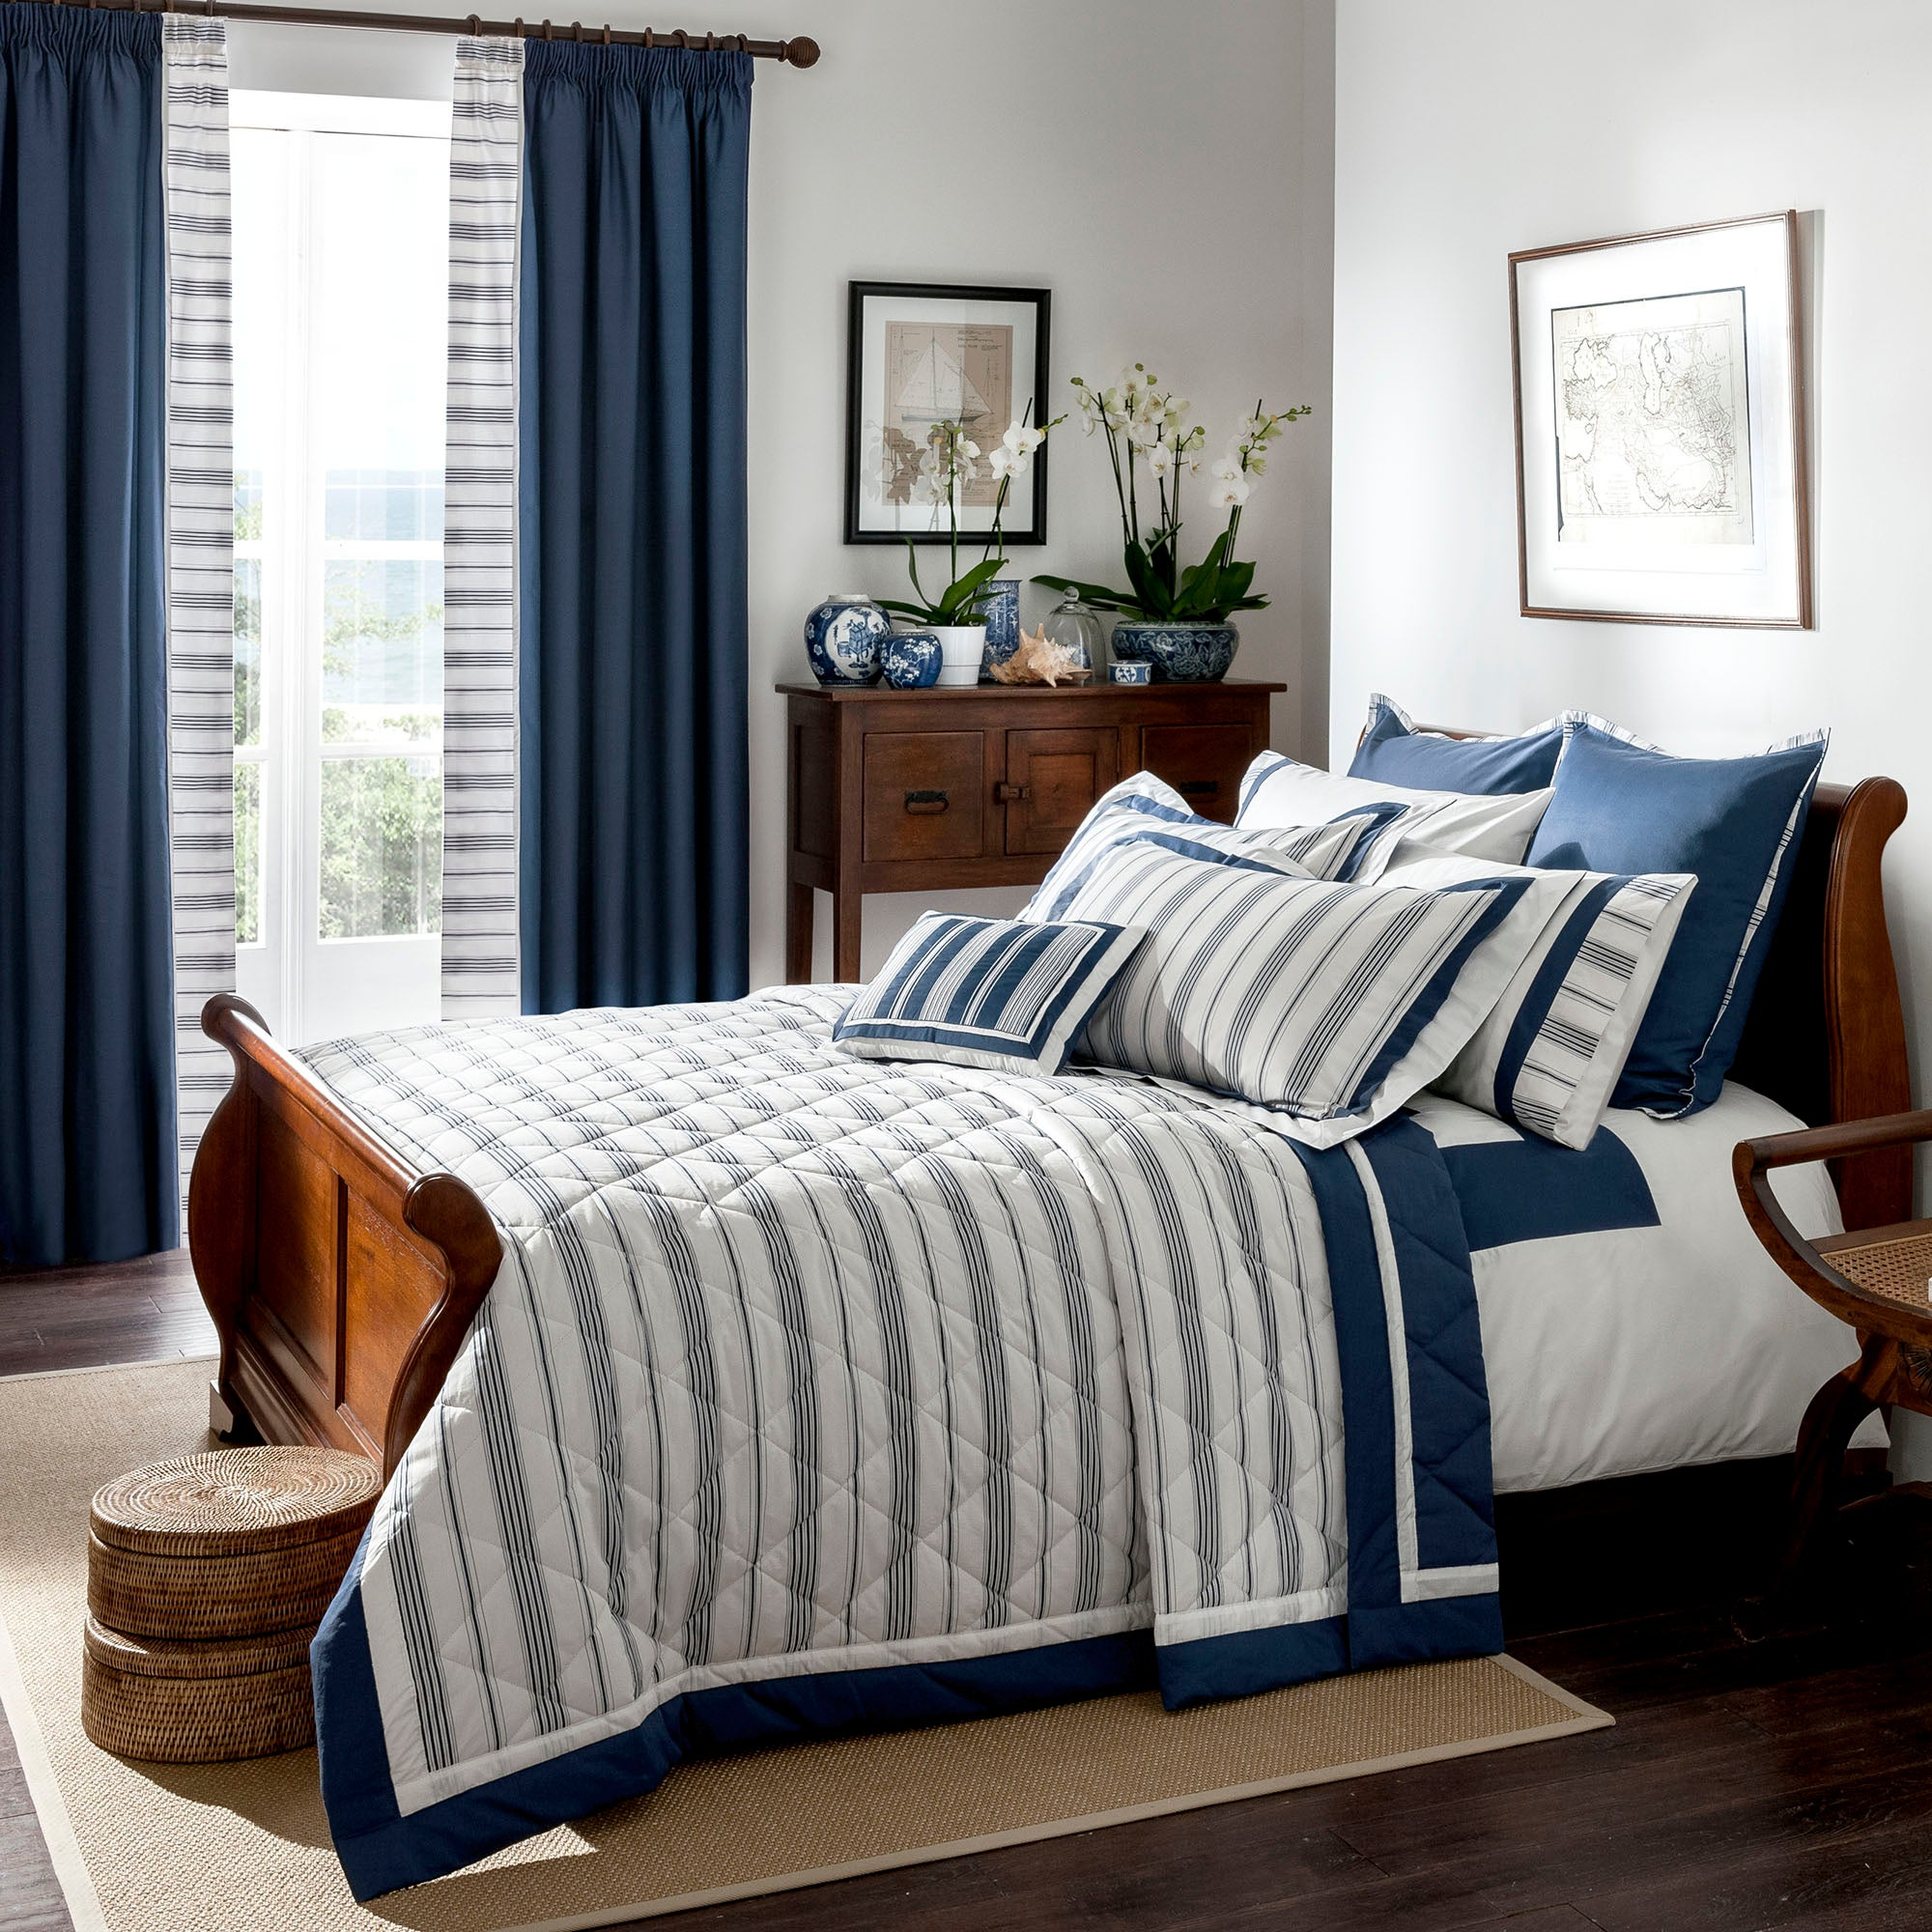 Dorma Navy Monaco Collection Bedspread